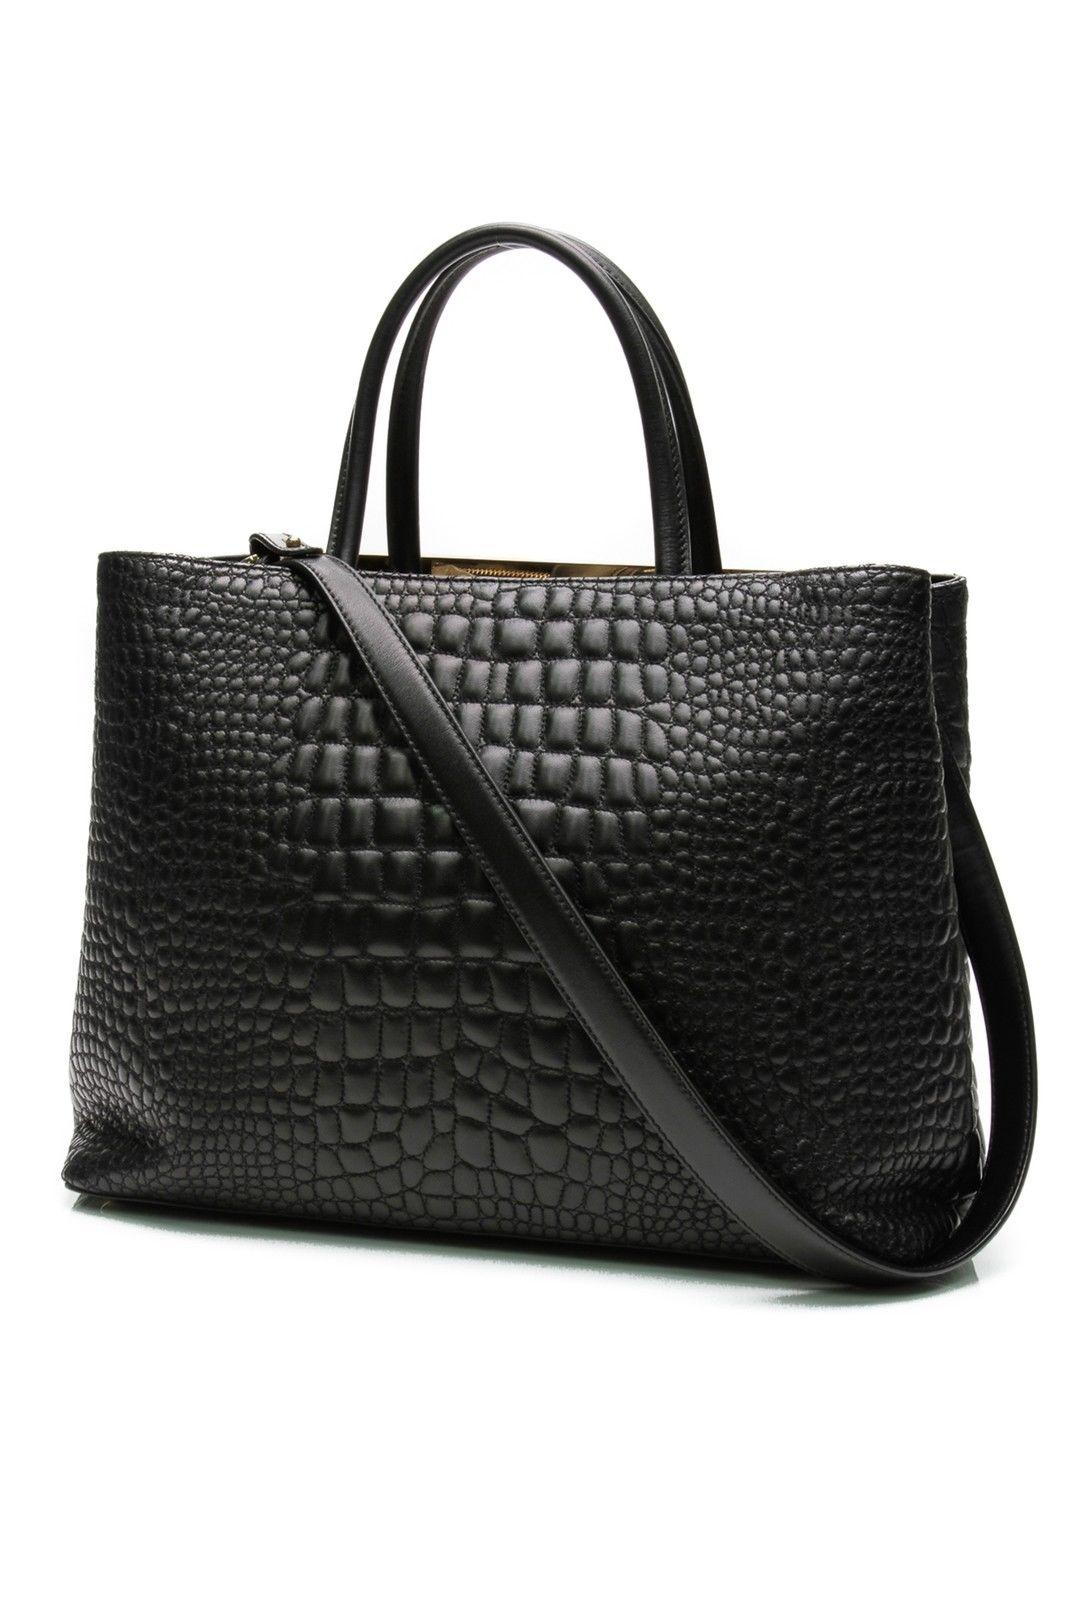 494a3787128 ... low cost fendi 2 jours black croc embossed leather tote tradesy 7c7d8  3f741